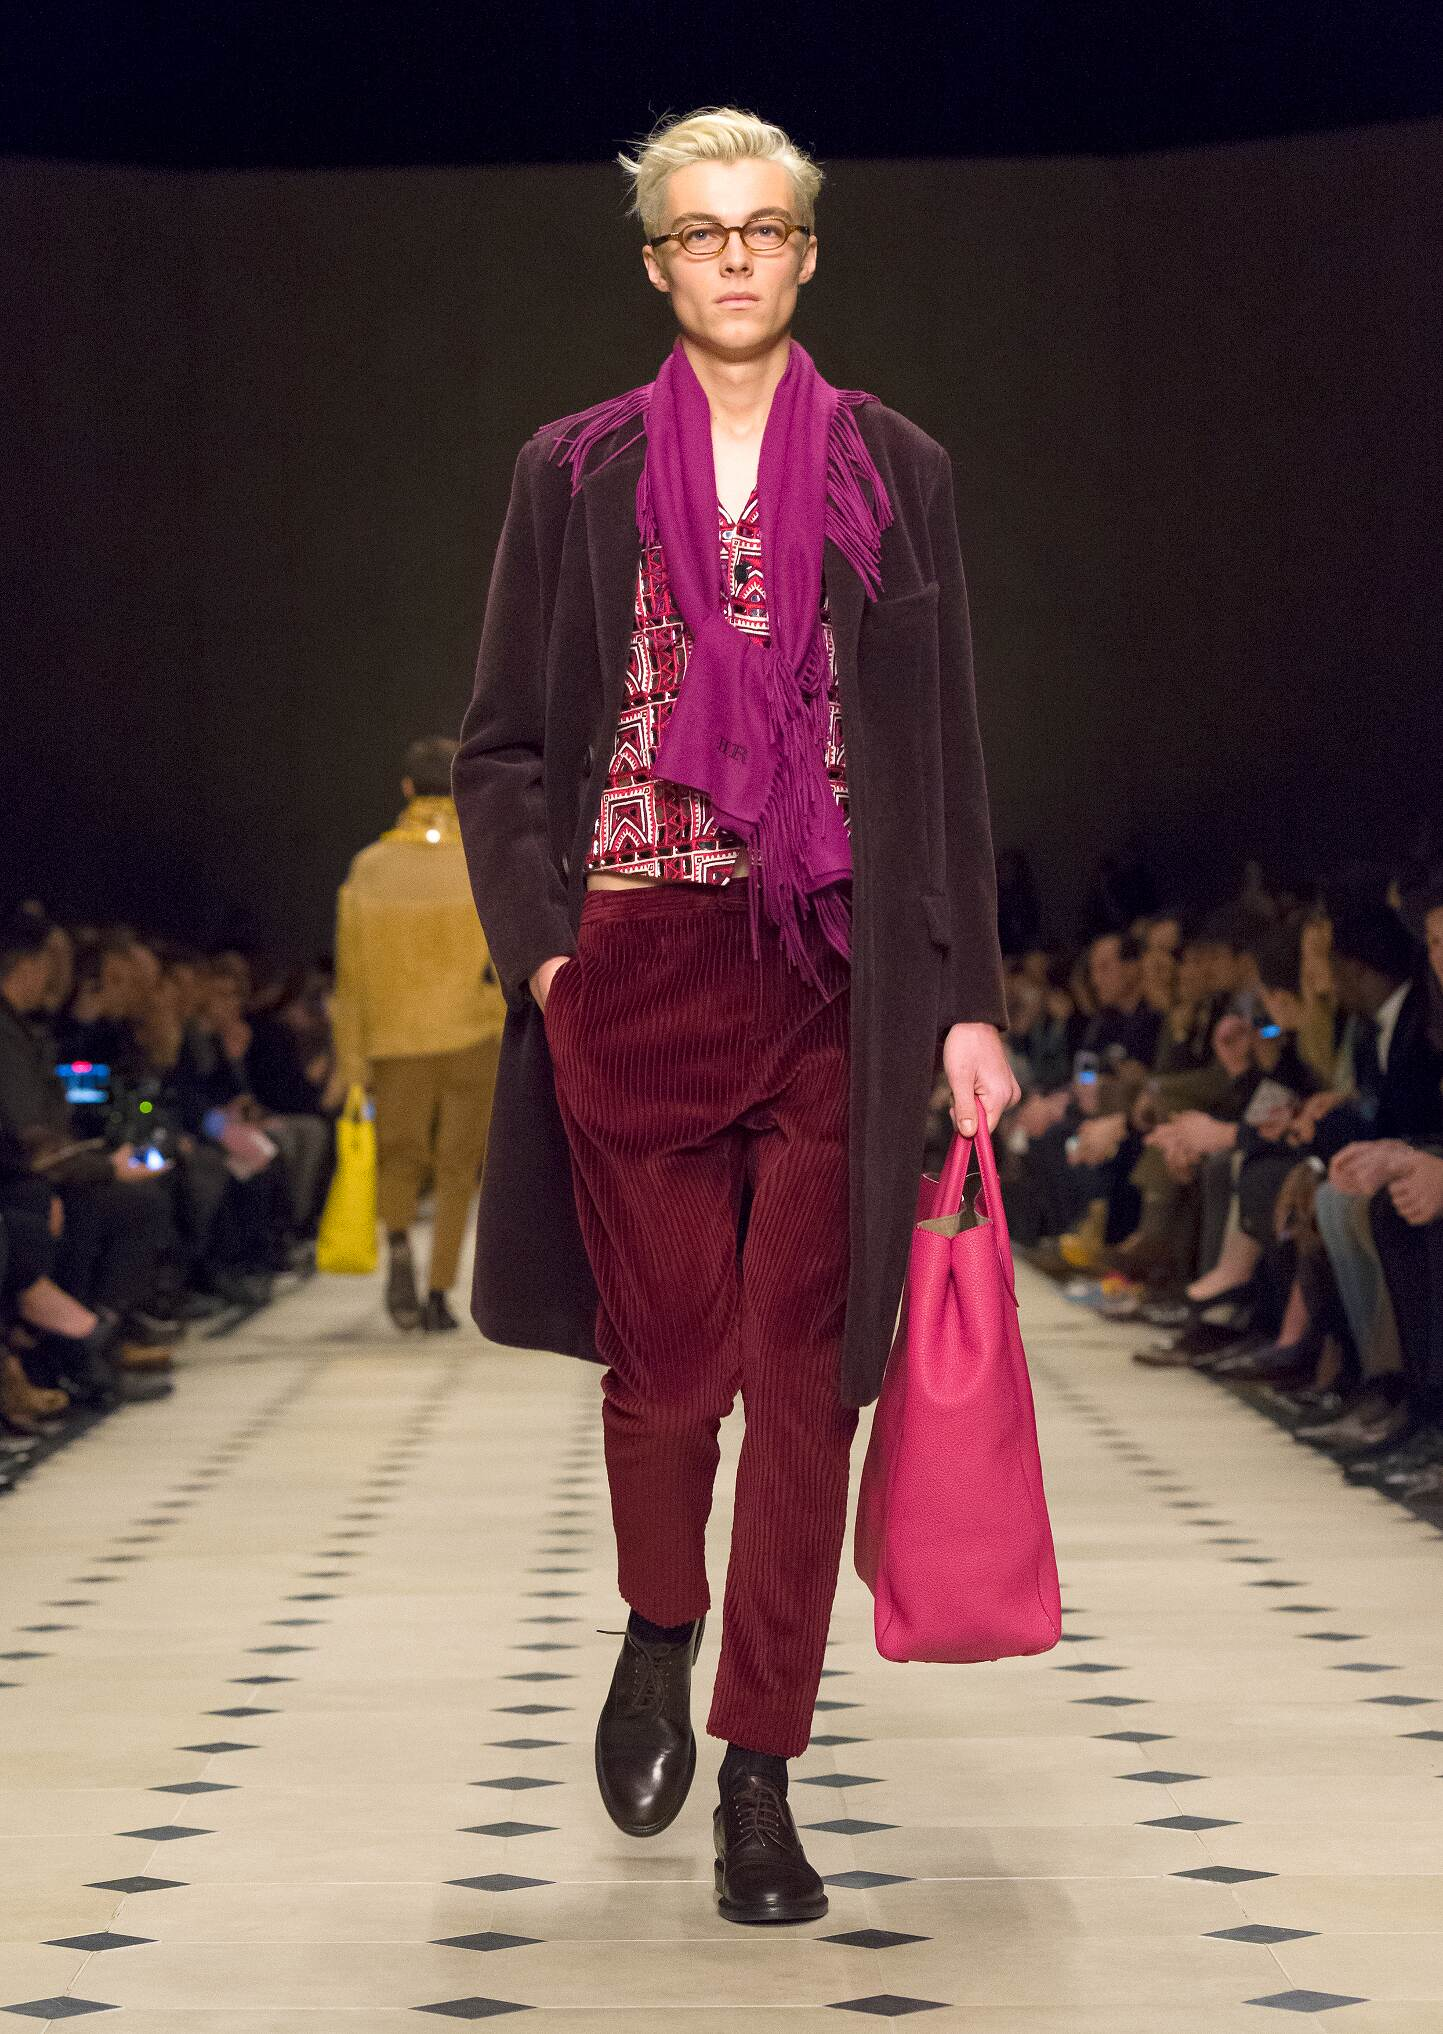 FW 2015 Burberry Prorsum Fashion Show